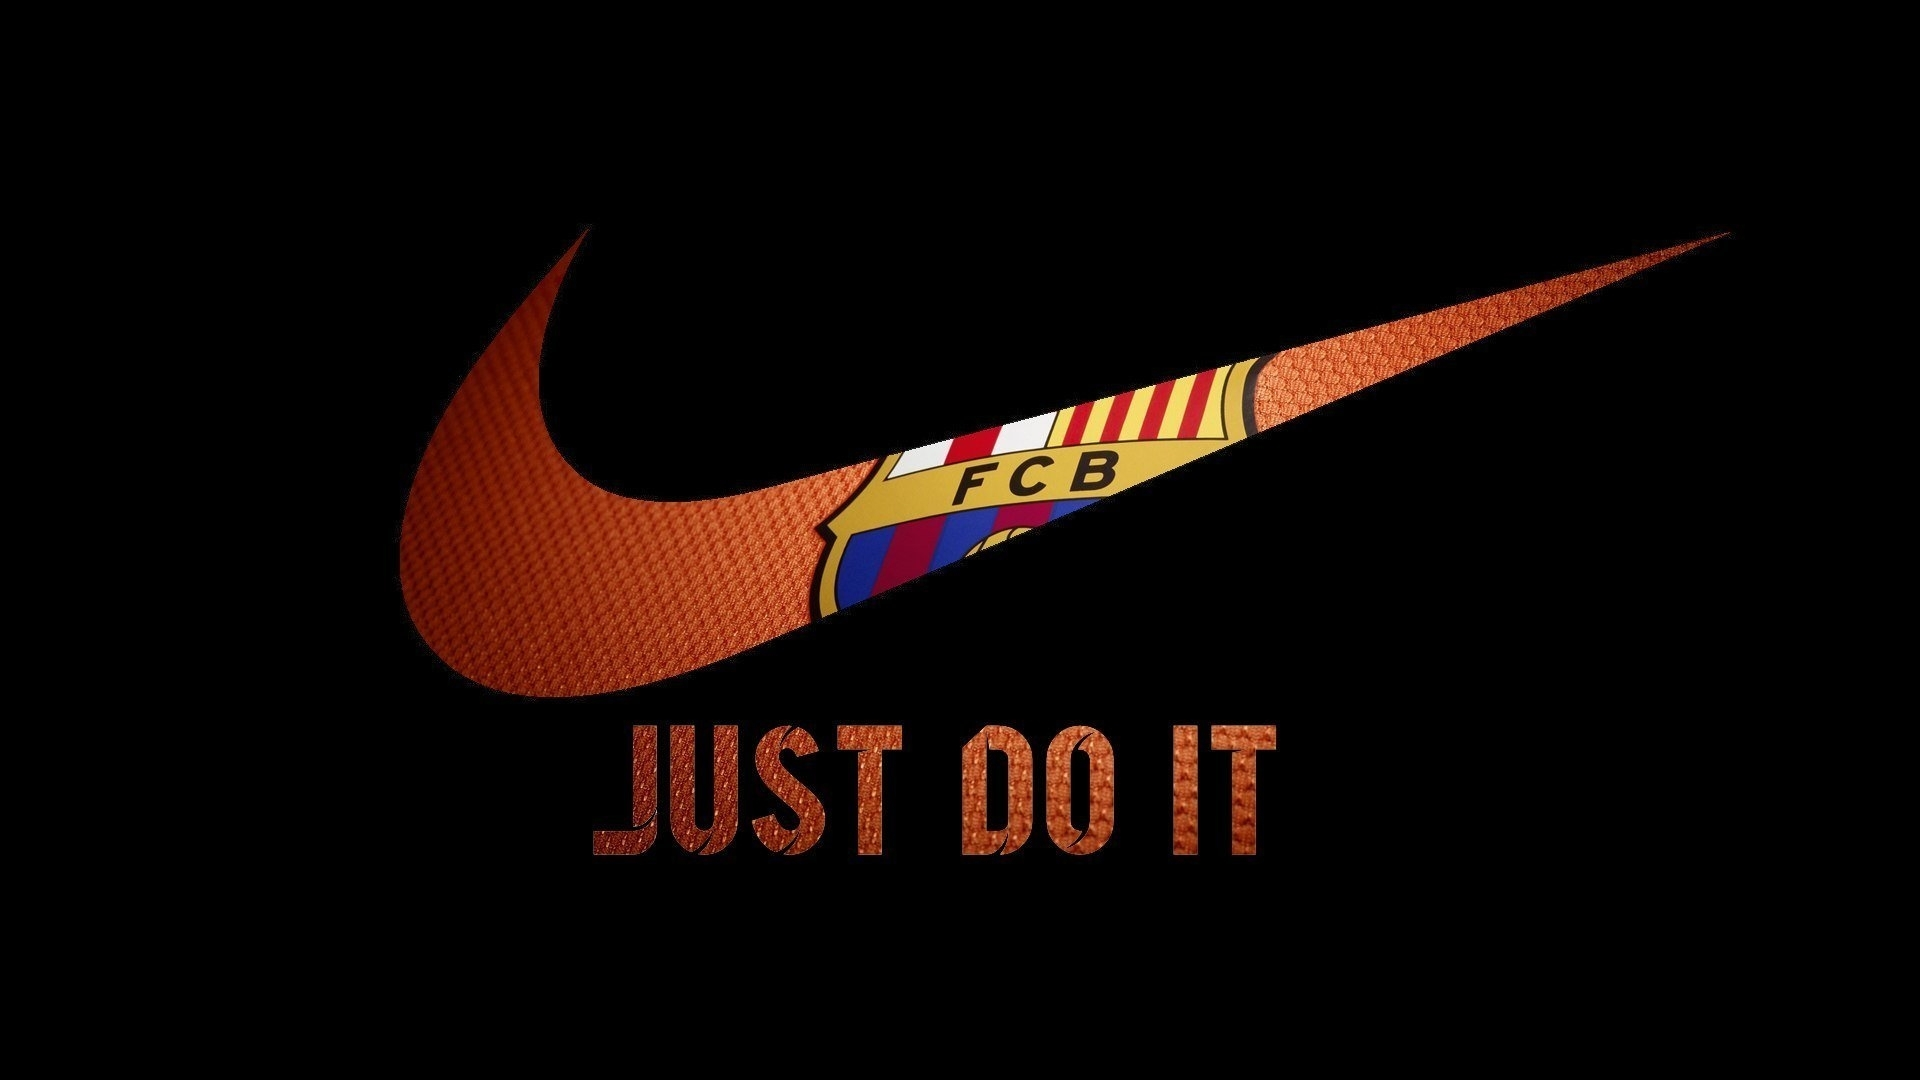 barcelona sign new long term contract with nike | news.winner.co.uk